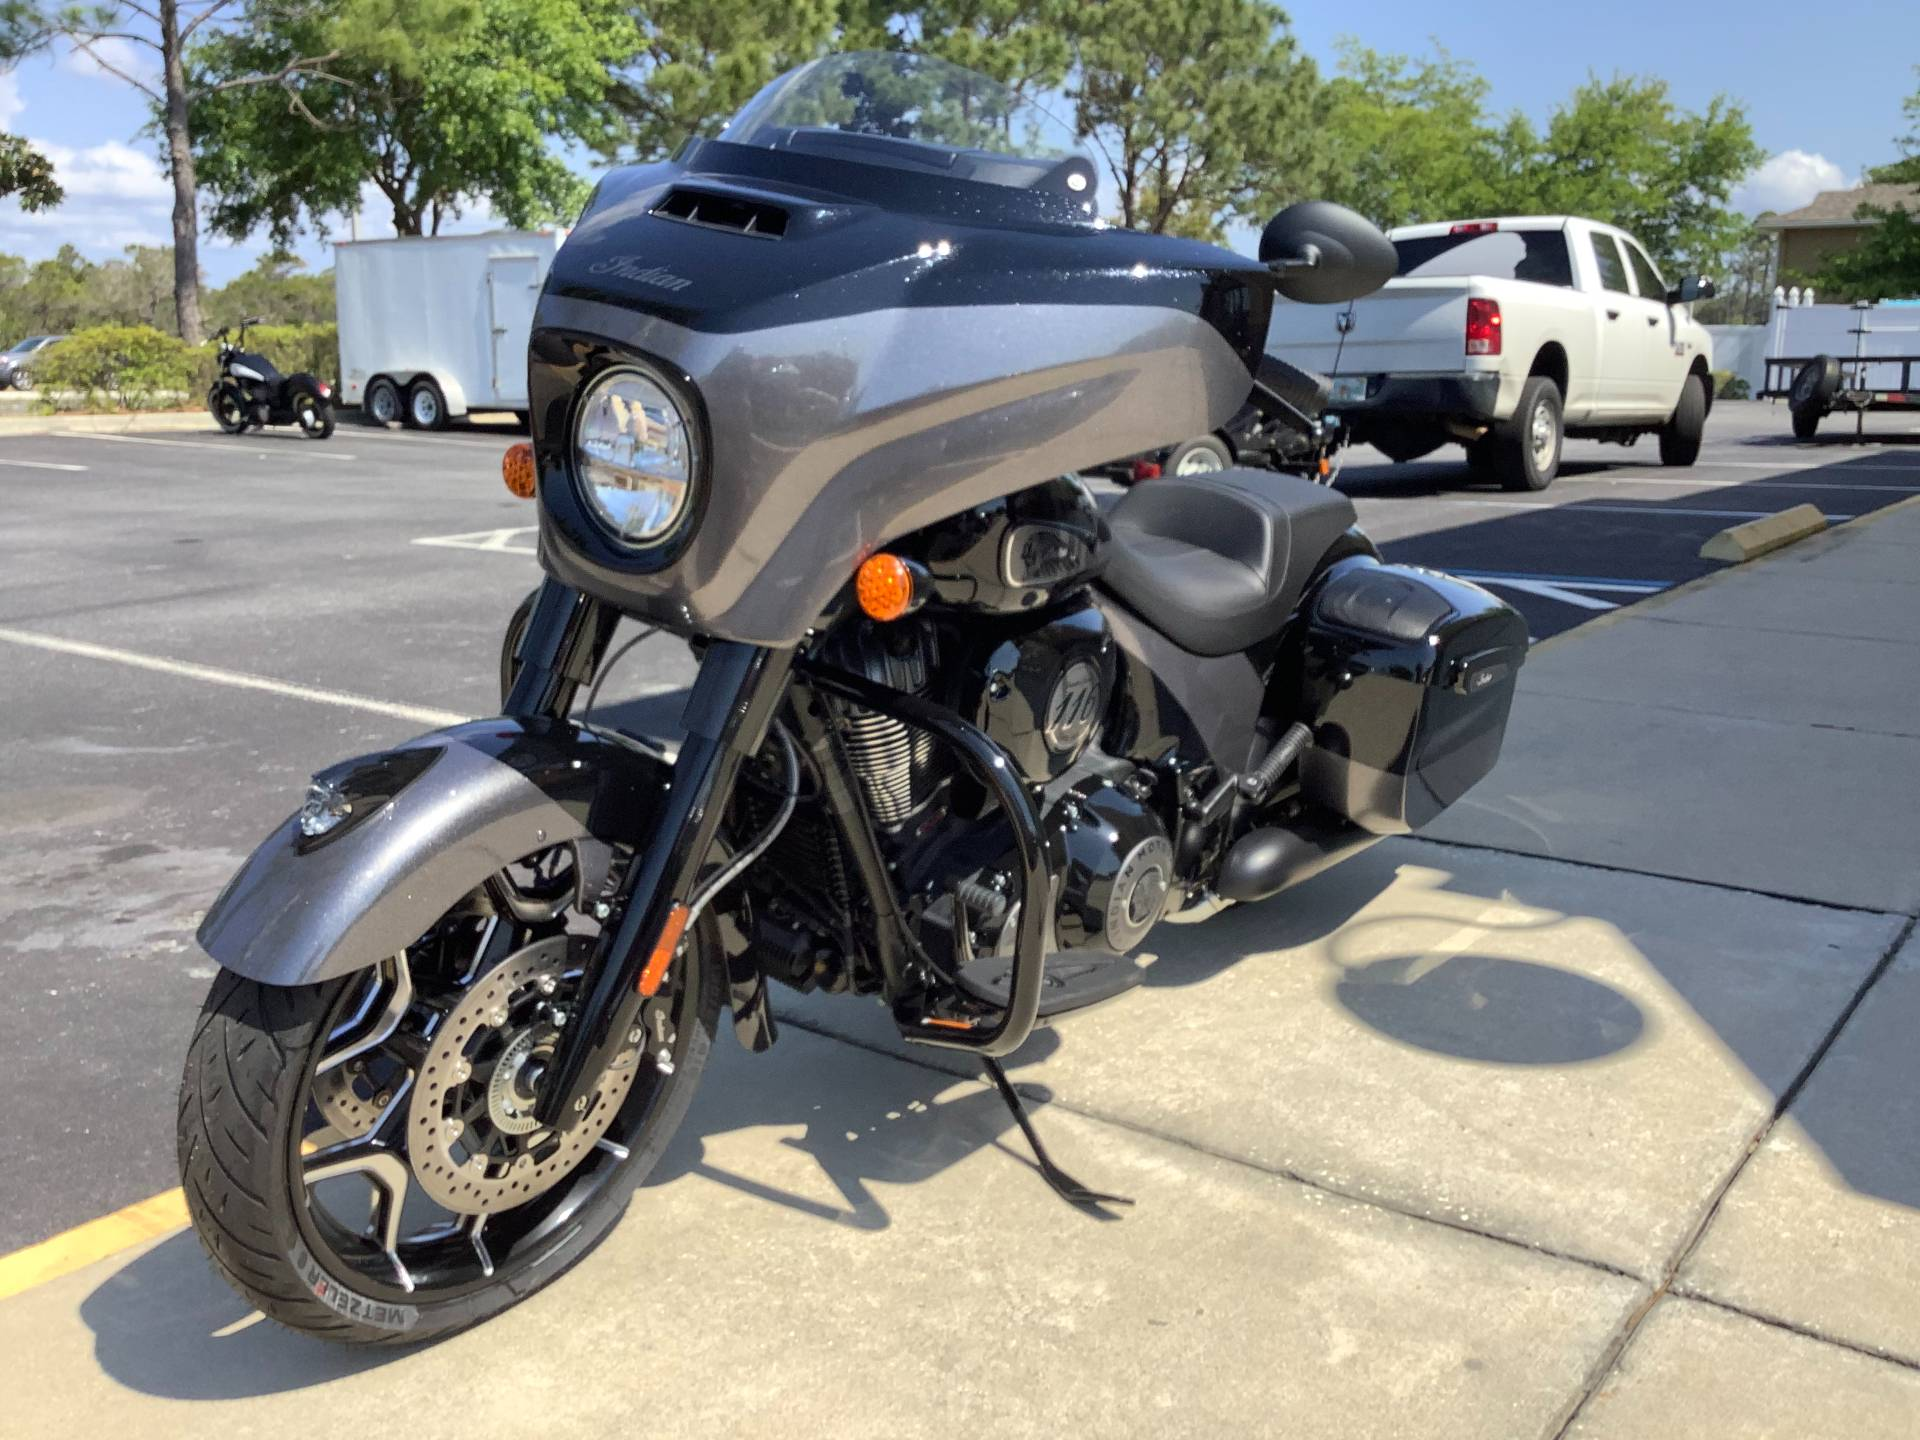 2021 Indian CHIEFTAIN ELITE in Panama City Beach, Florida - Photo 19